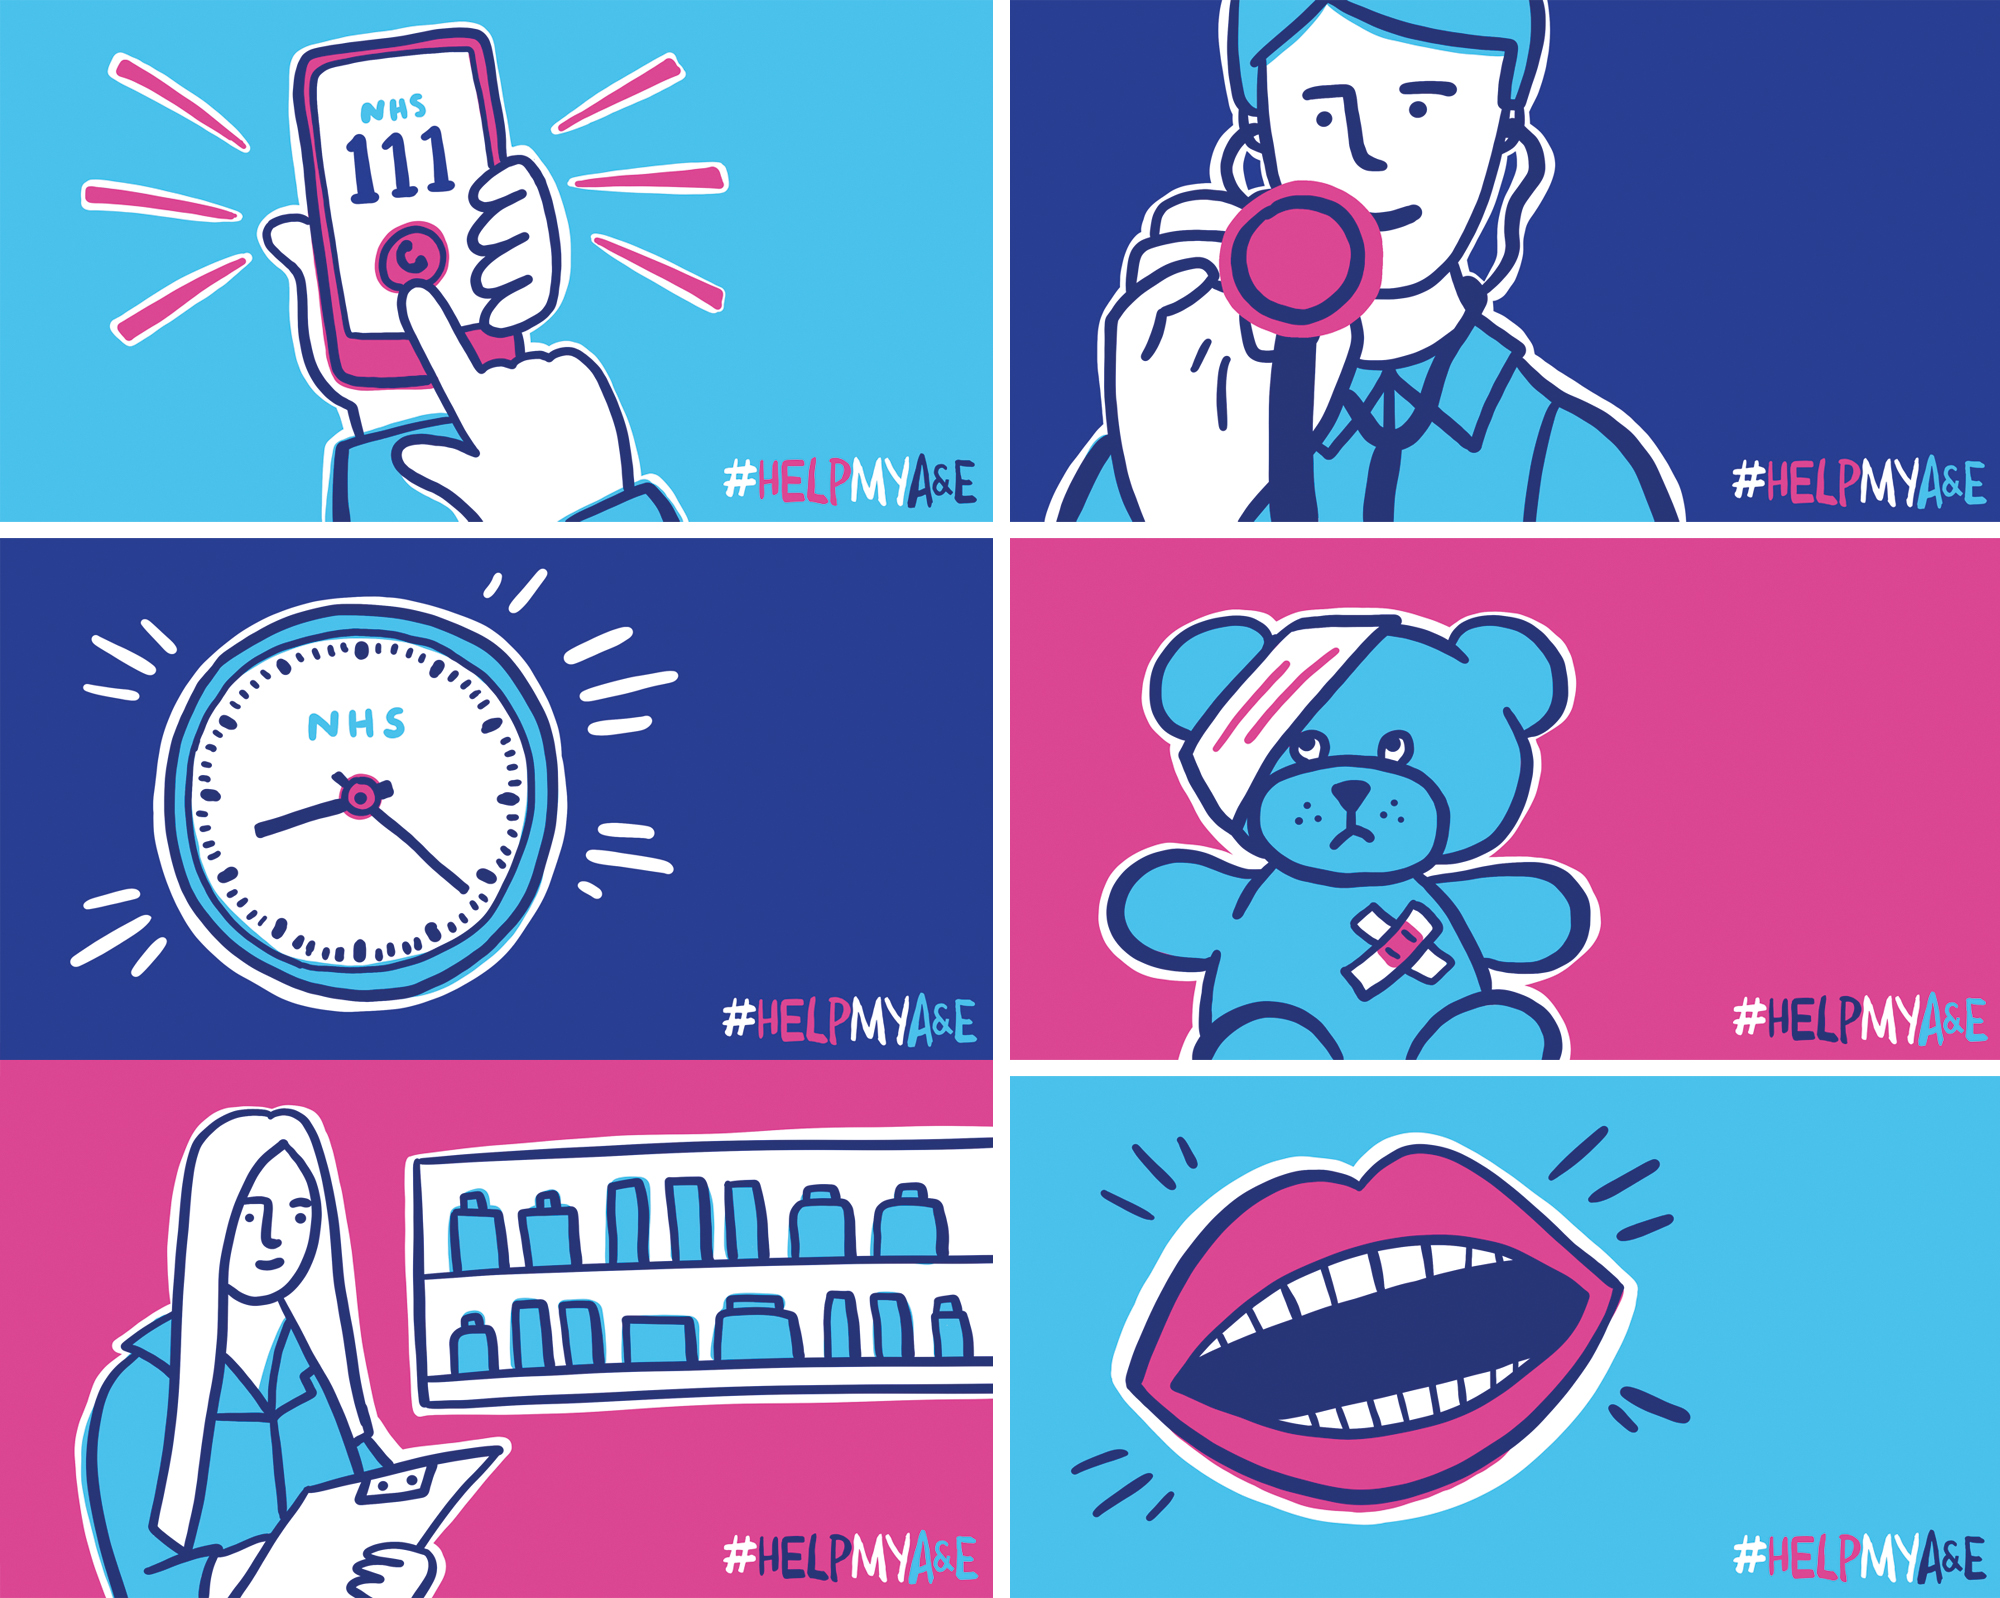 nhs campaign illustrations